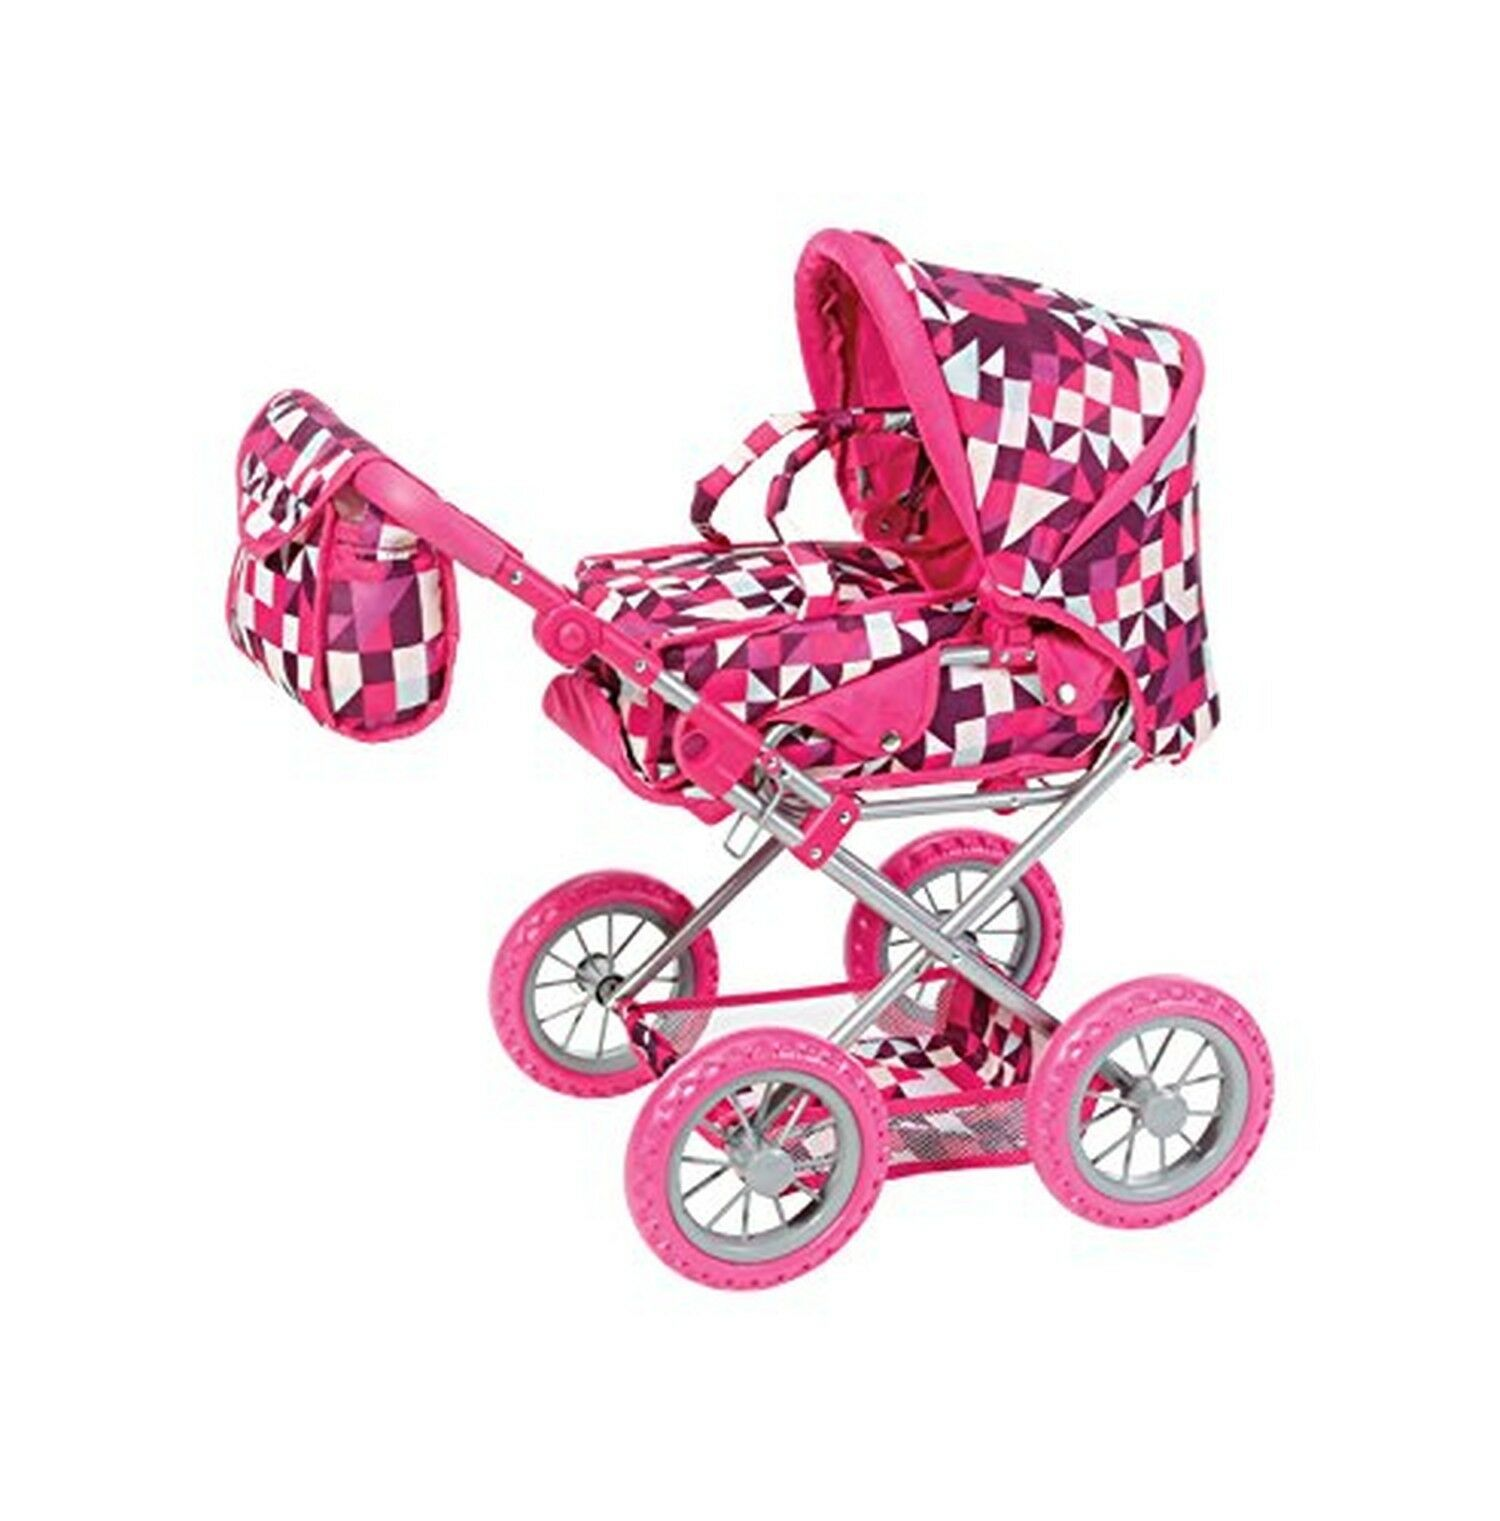 Knorrtoys 63194 knoortoys Doll Carriage Ruby-Crazy Squares, Multi Farbe